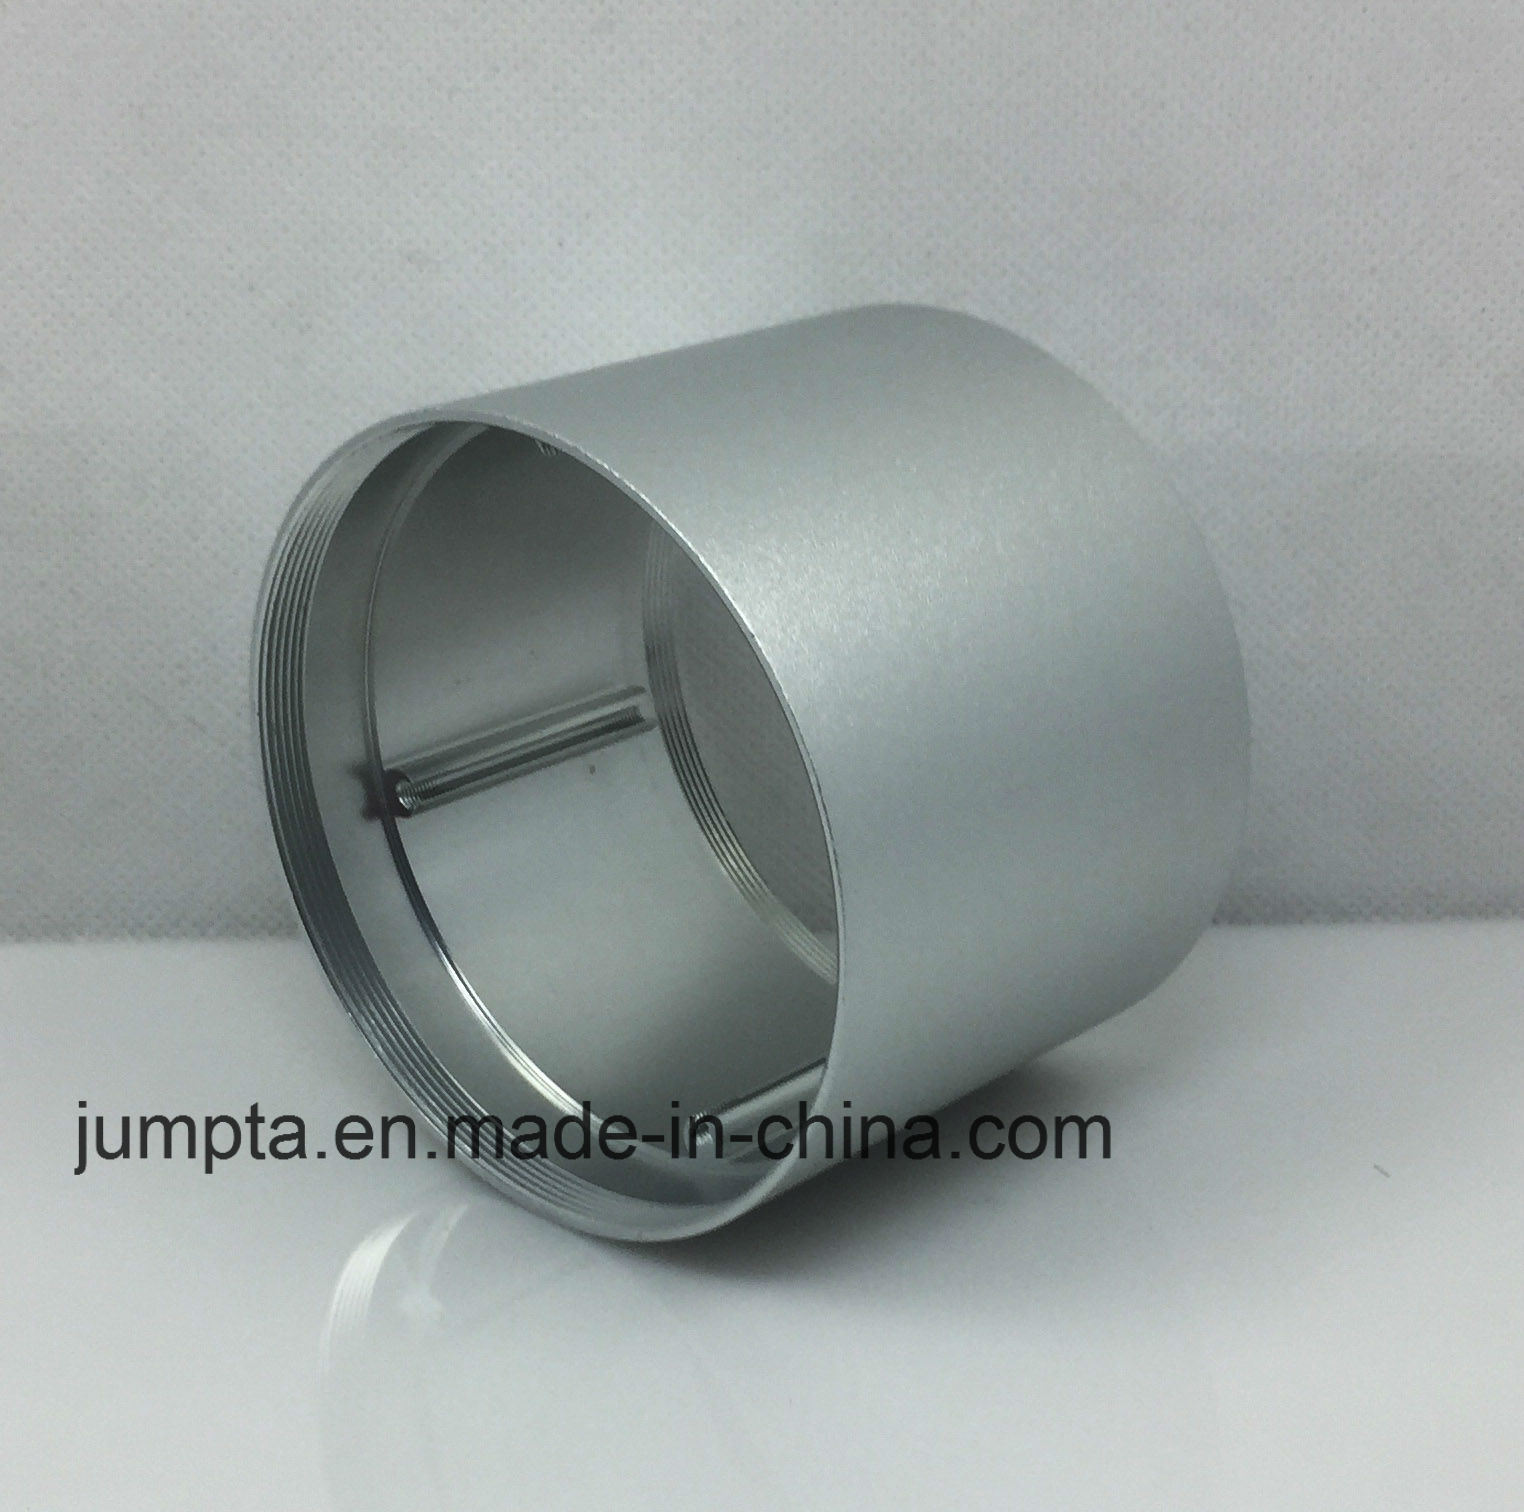 China CNC Metal Machining Parts/Aluminum Extrusion Anodized Wire ...